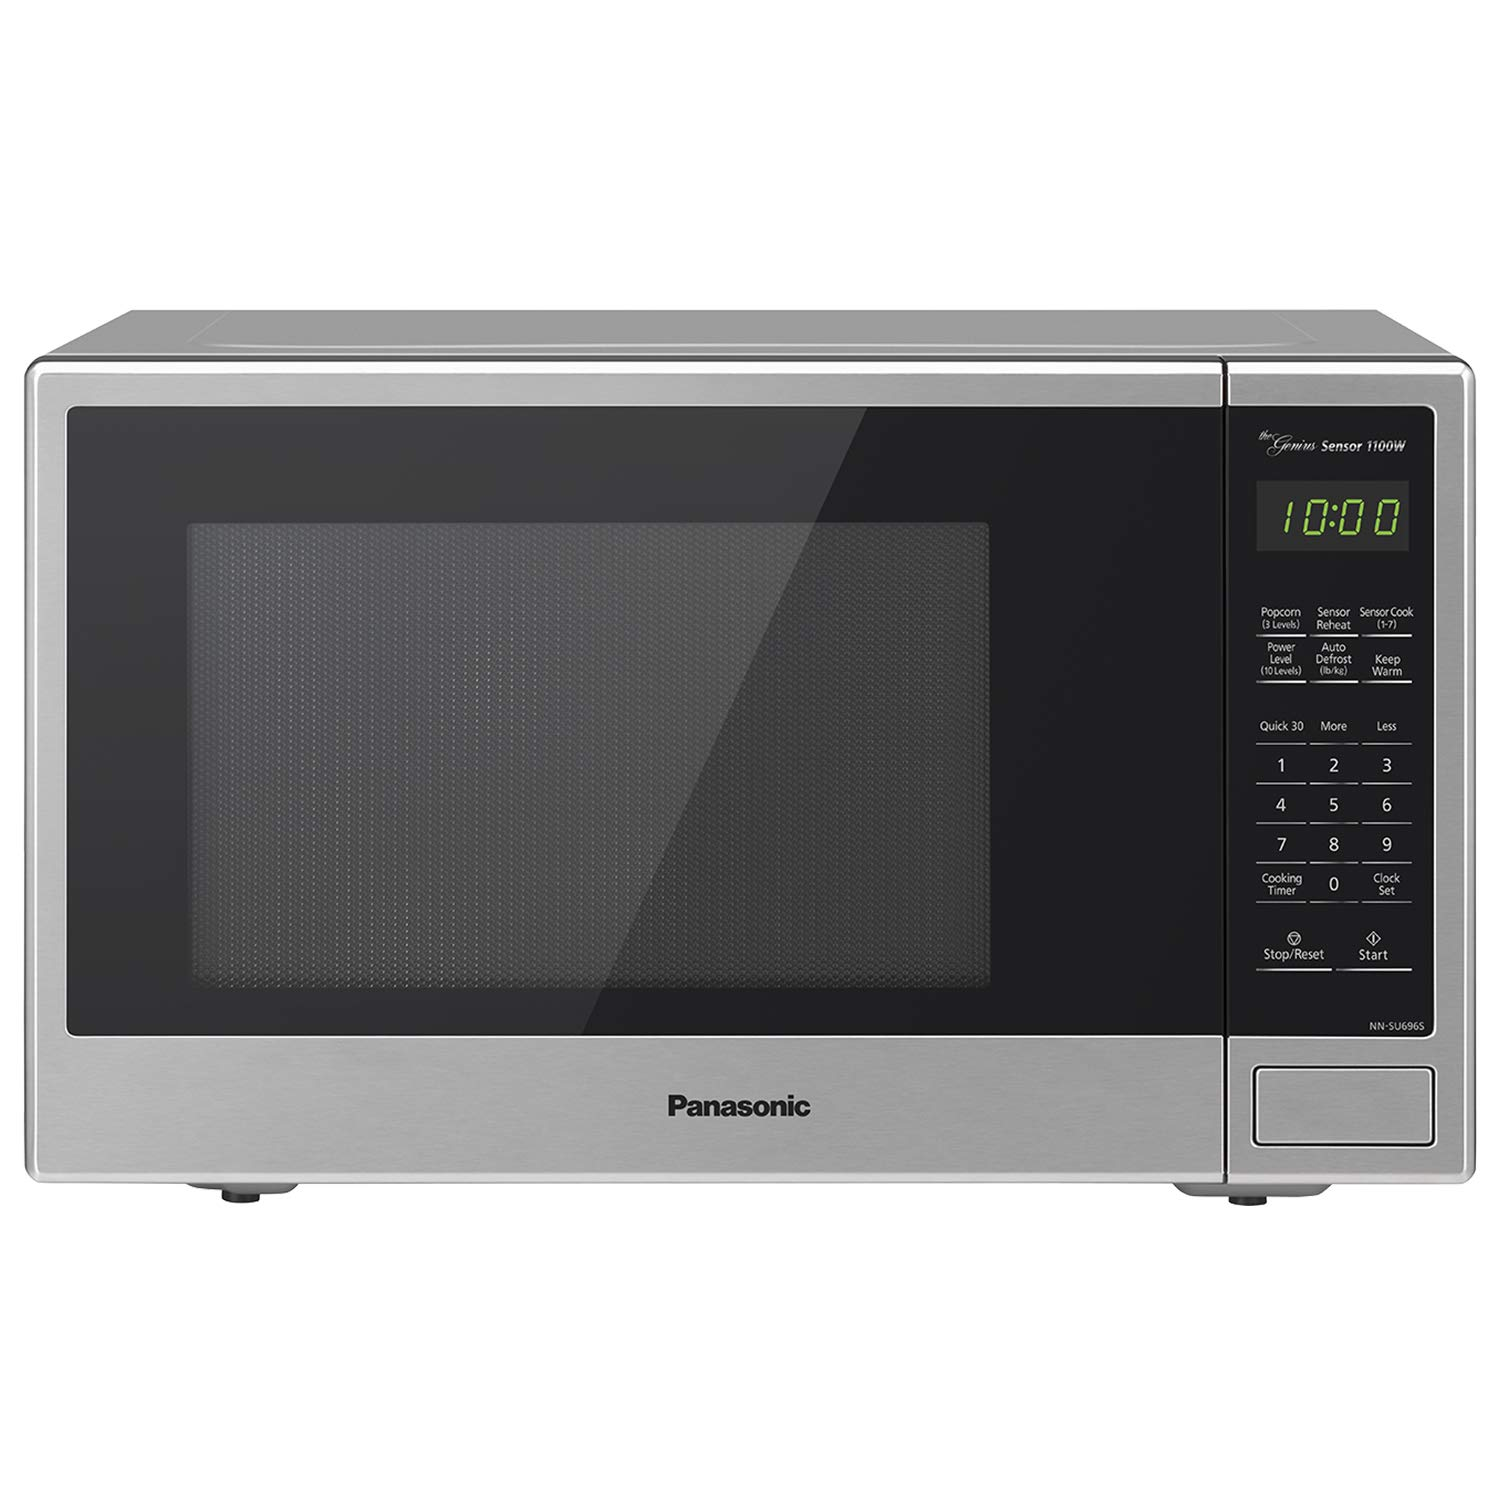 Panasonic Countertop/Built-in Microwave